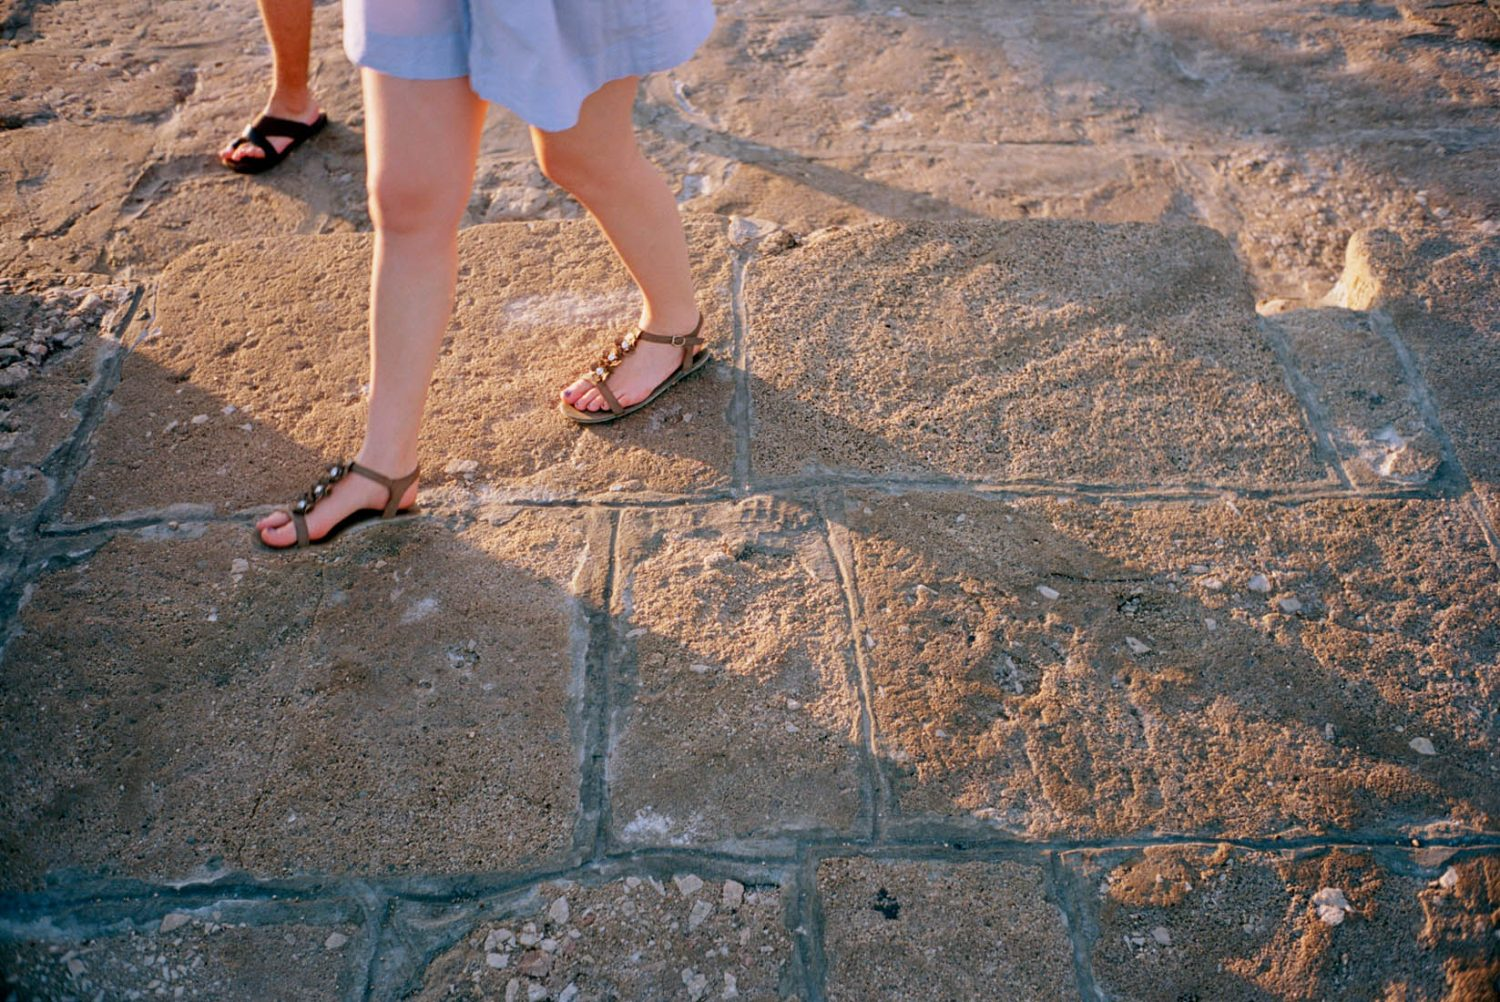 Kroatie, Krk, 20-08-2011 Beautiful women legs at Krk island in Croatia PHOTO AND COPYRIGHT ROGER CREMERS